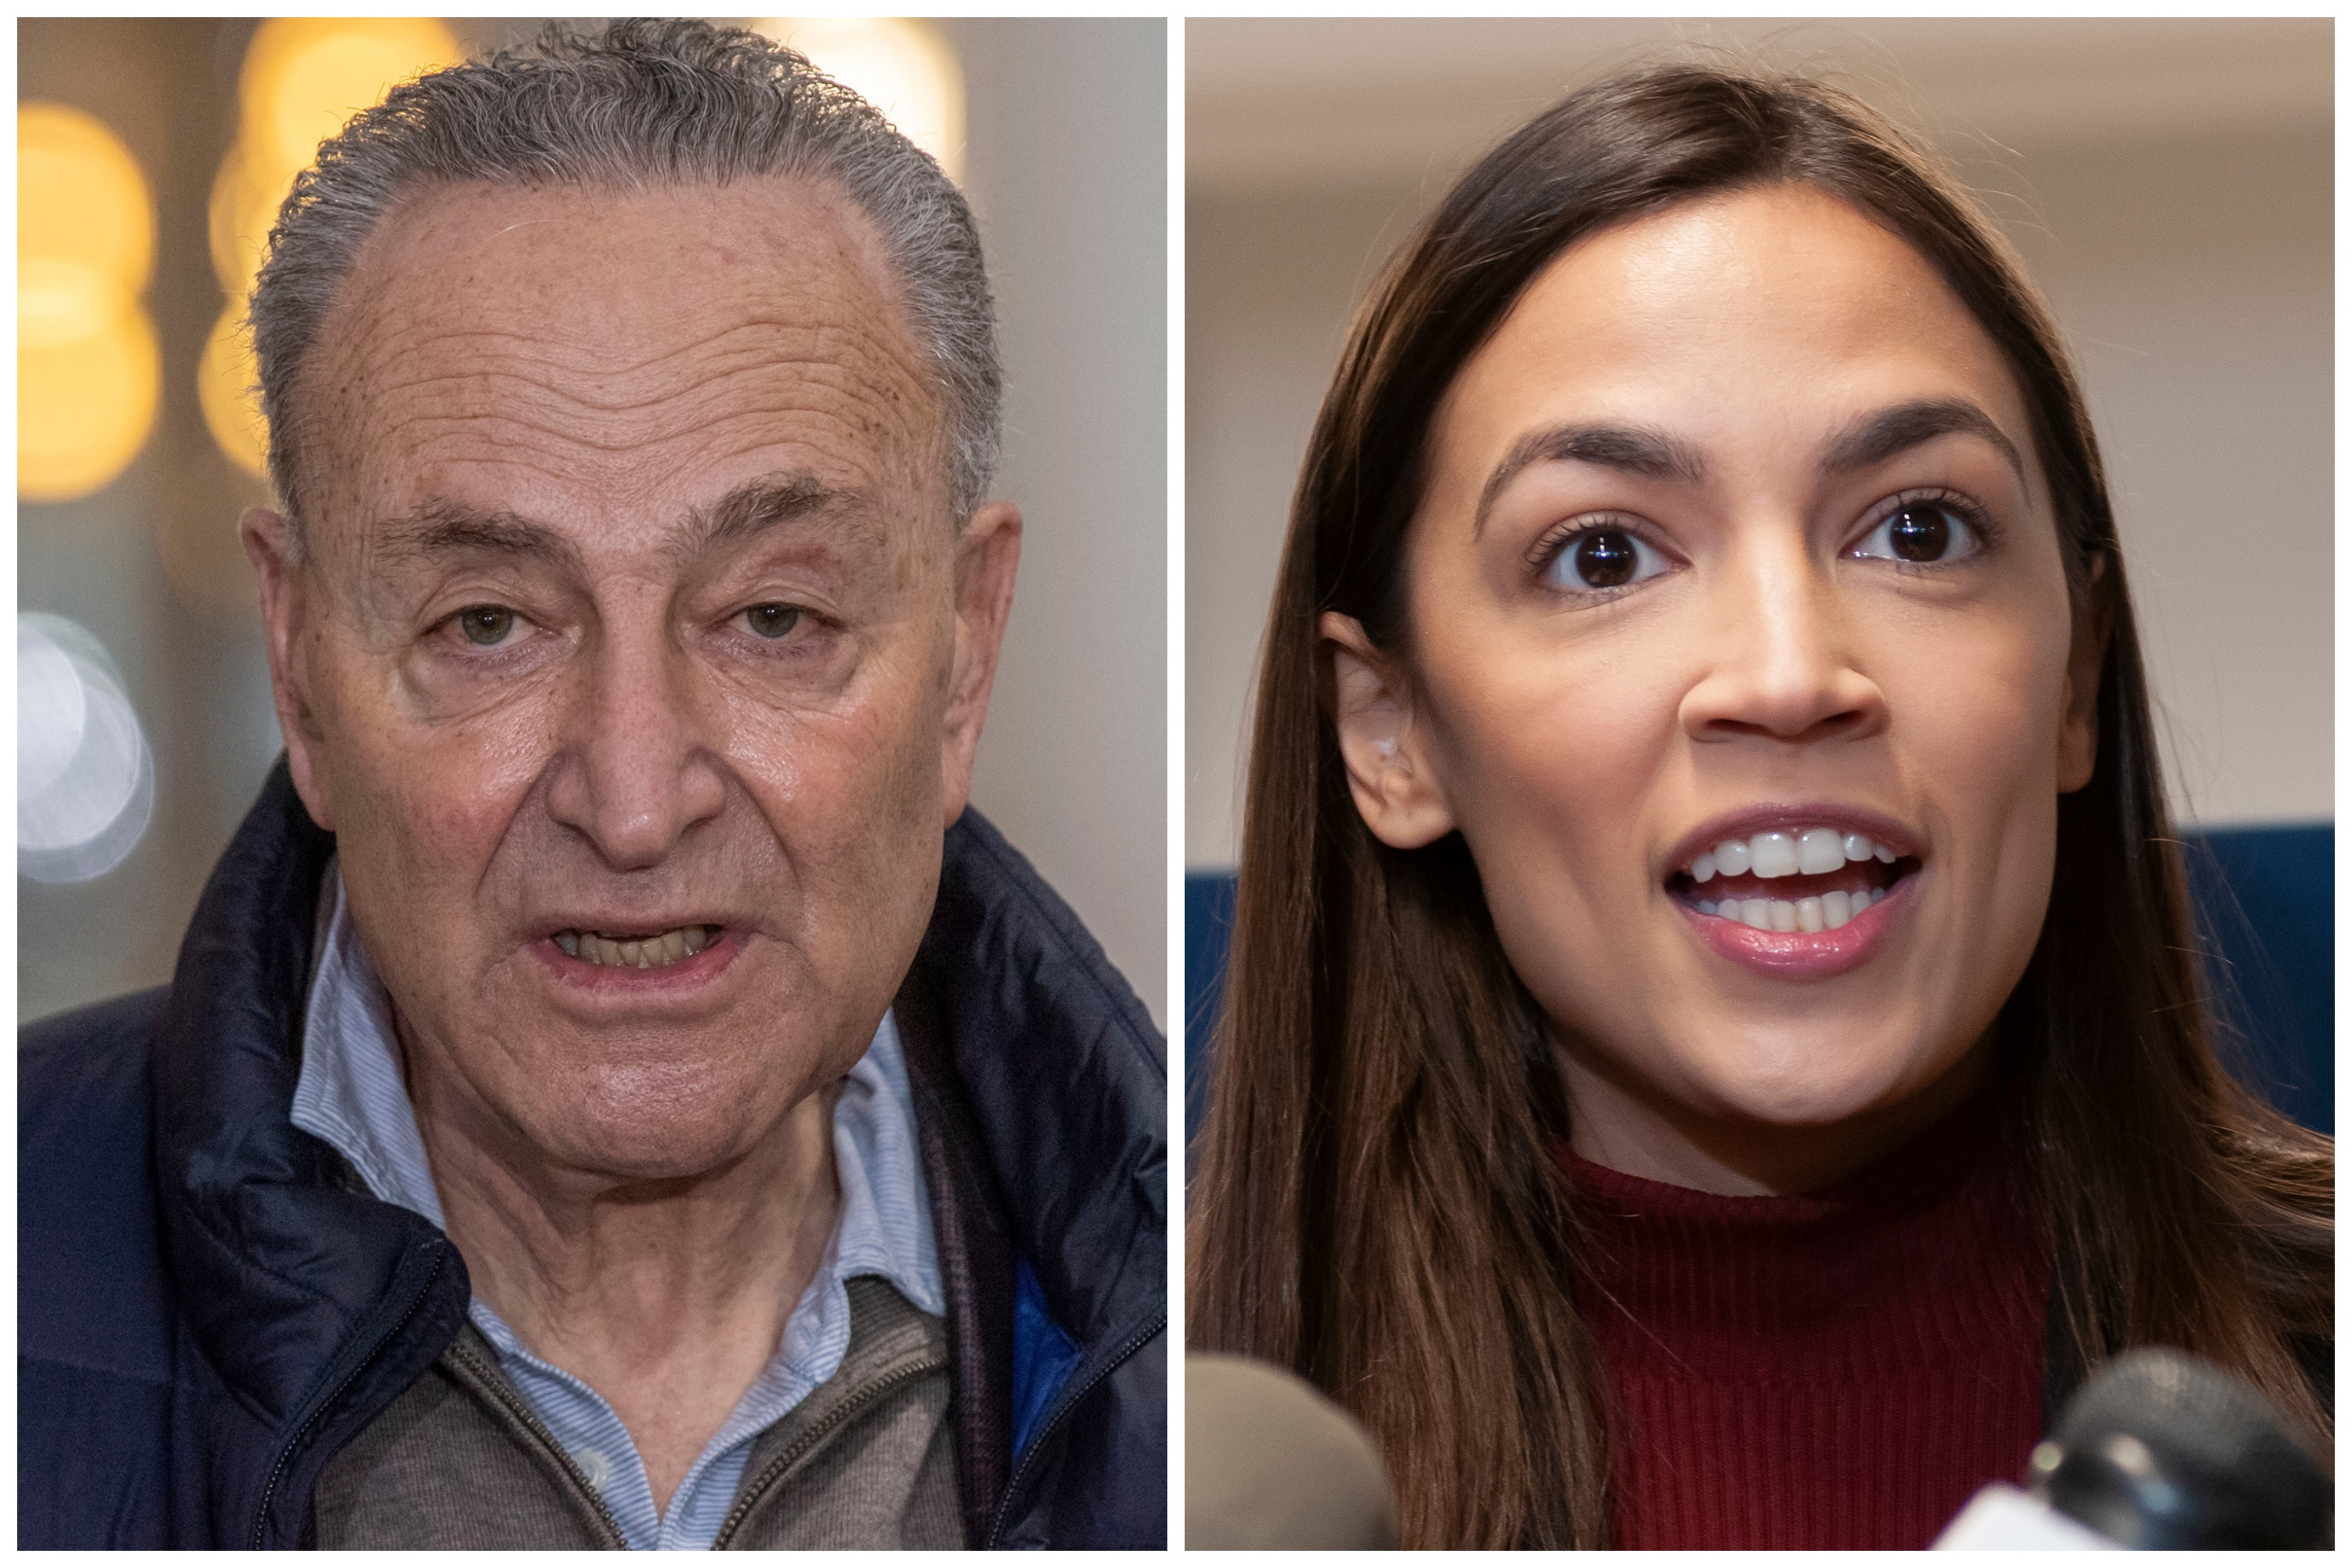 Senate Majority Leader Charles Schumer and Congressmember Alexandria Ocasio-Cortez announced a plan to help families with burial cots for victims of the coronavirus.